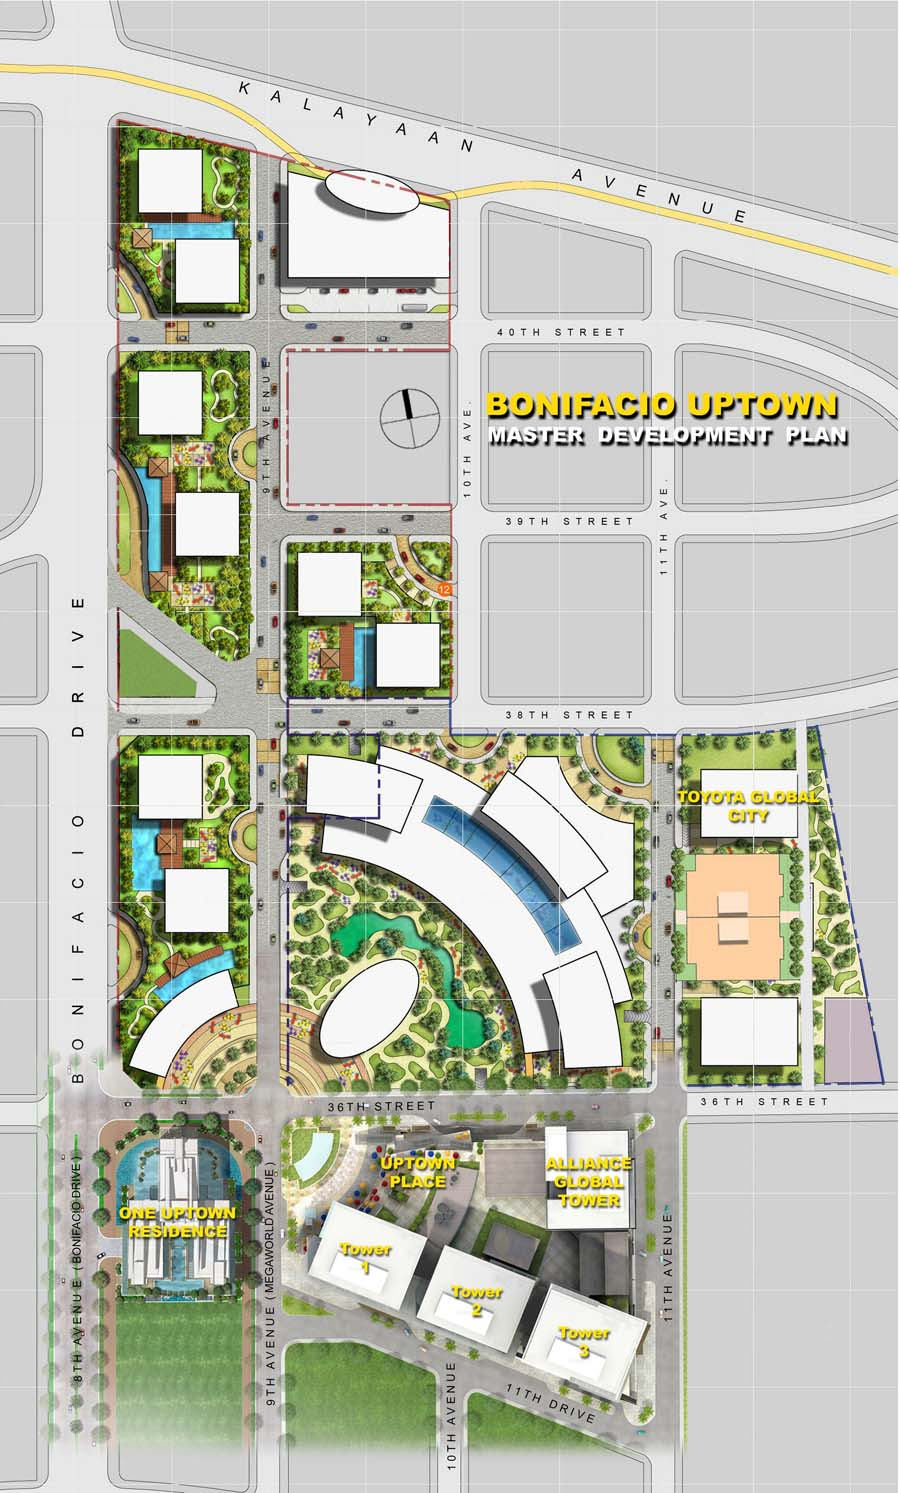 Site Development Plan of BONIFACIO UPTOWN